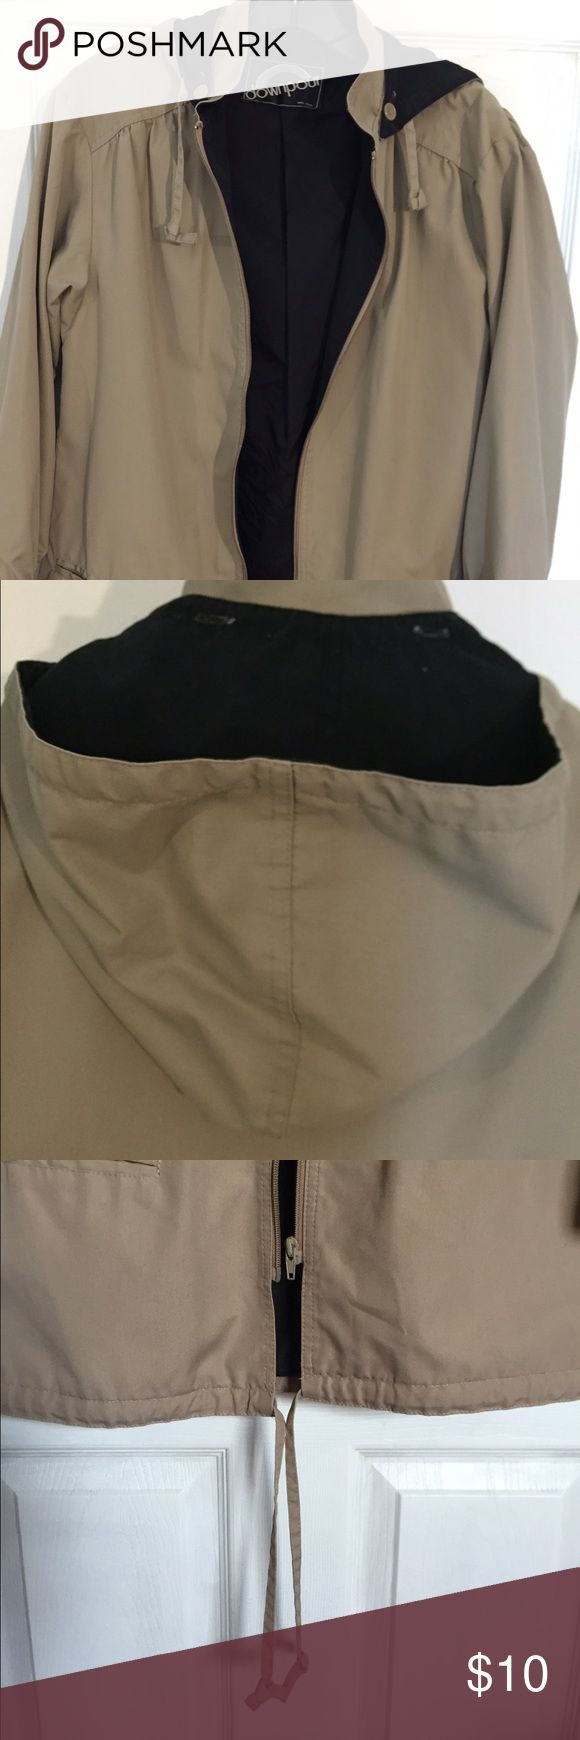 "Khaki hooded jacket Lady khaki hooded jacket.Detachable hood, Size 8.Lined. With 100 % nylon. Draw string in the lower portion . Contain two pockets , separating zipper .Good as new . 28 "" long from shoulder down By: downpour downpour Jackets & Coats"